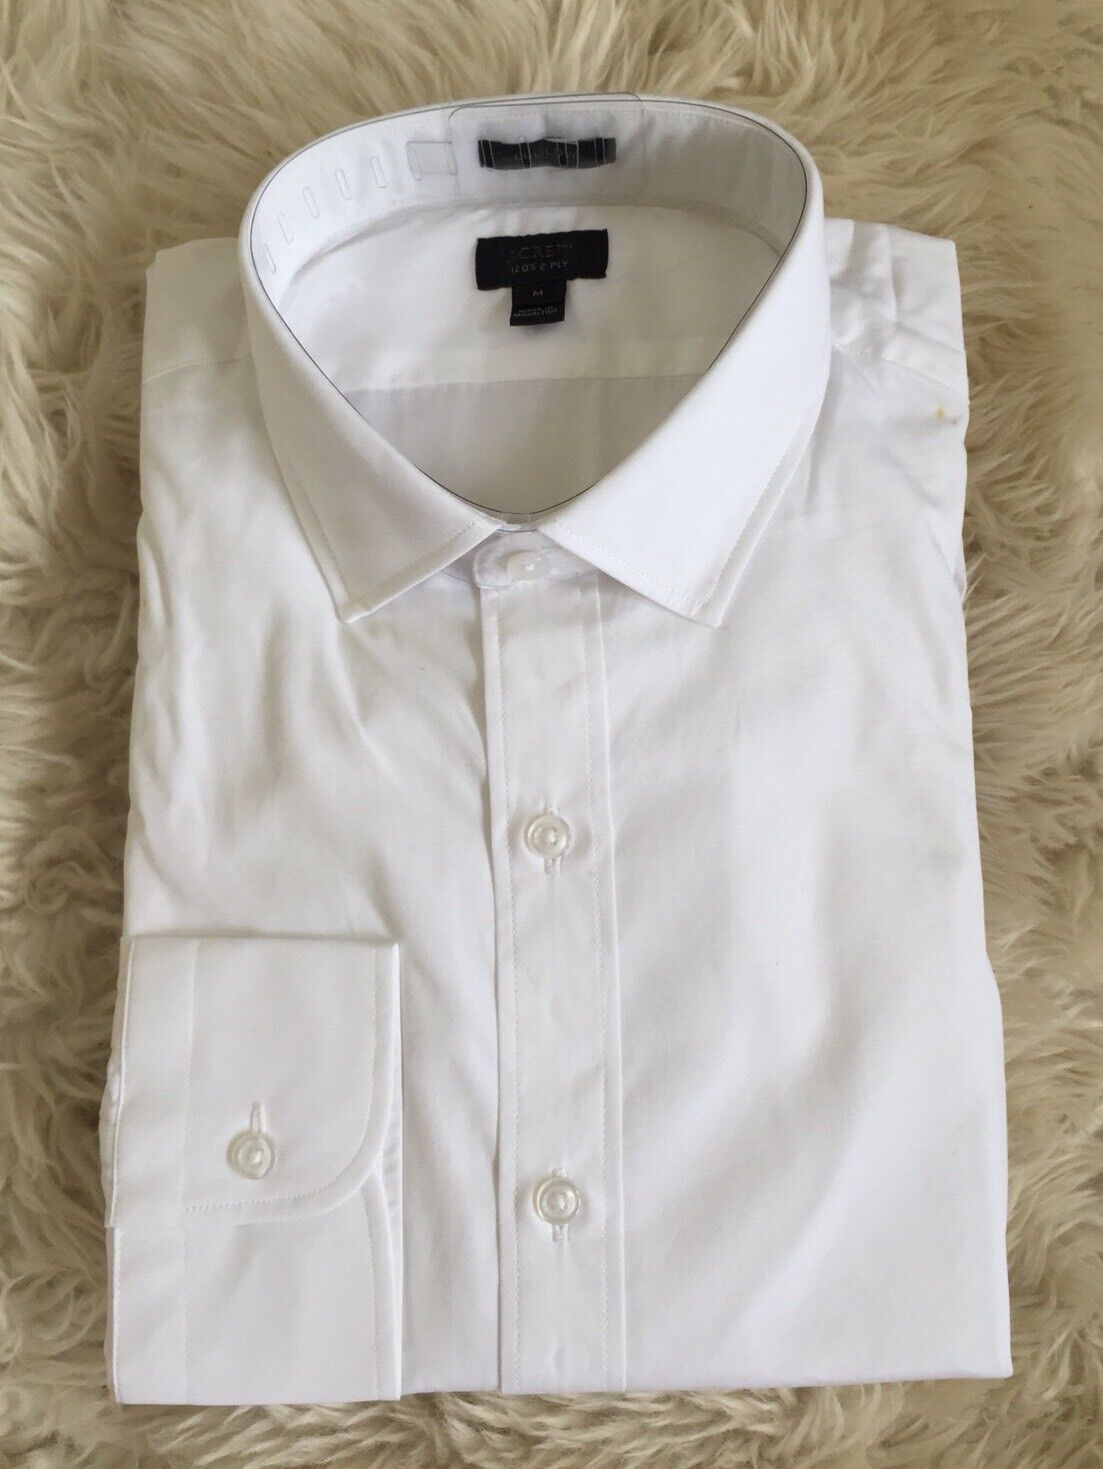 New J Crew  Ludlow Spread Collar Shirt M White suiting office work 99452